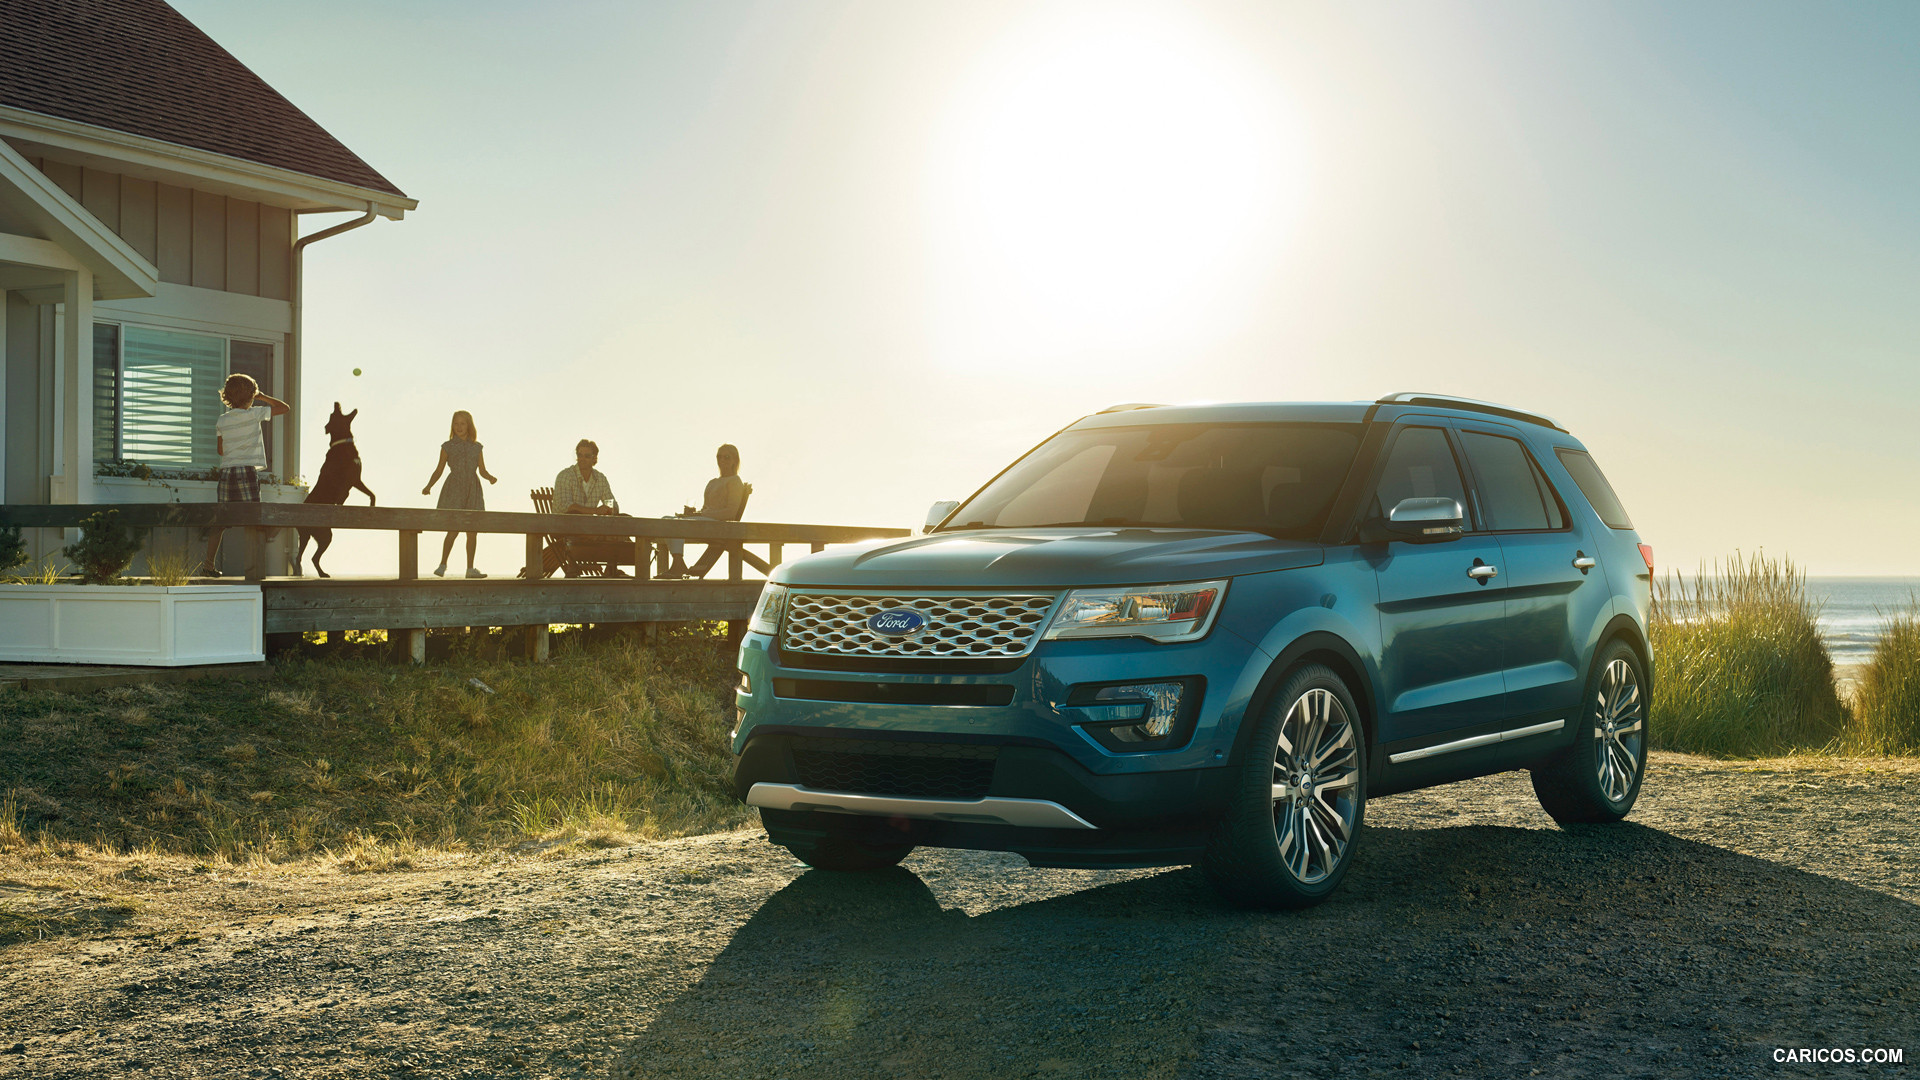 1920x1080 - Ford Explorer Wallpapers 25